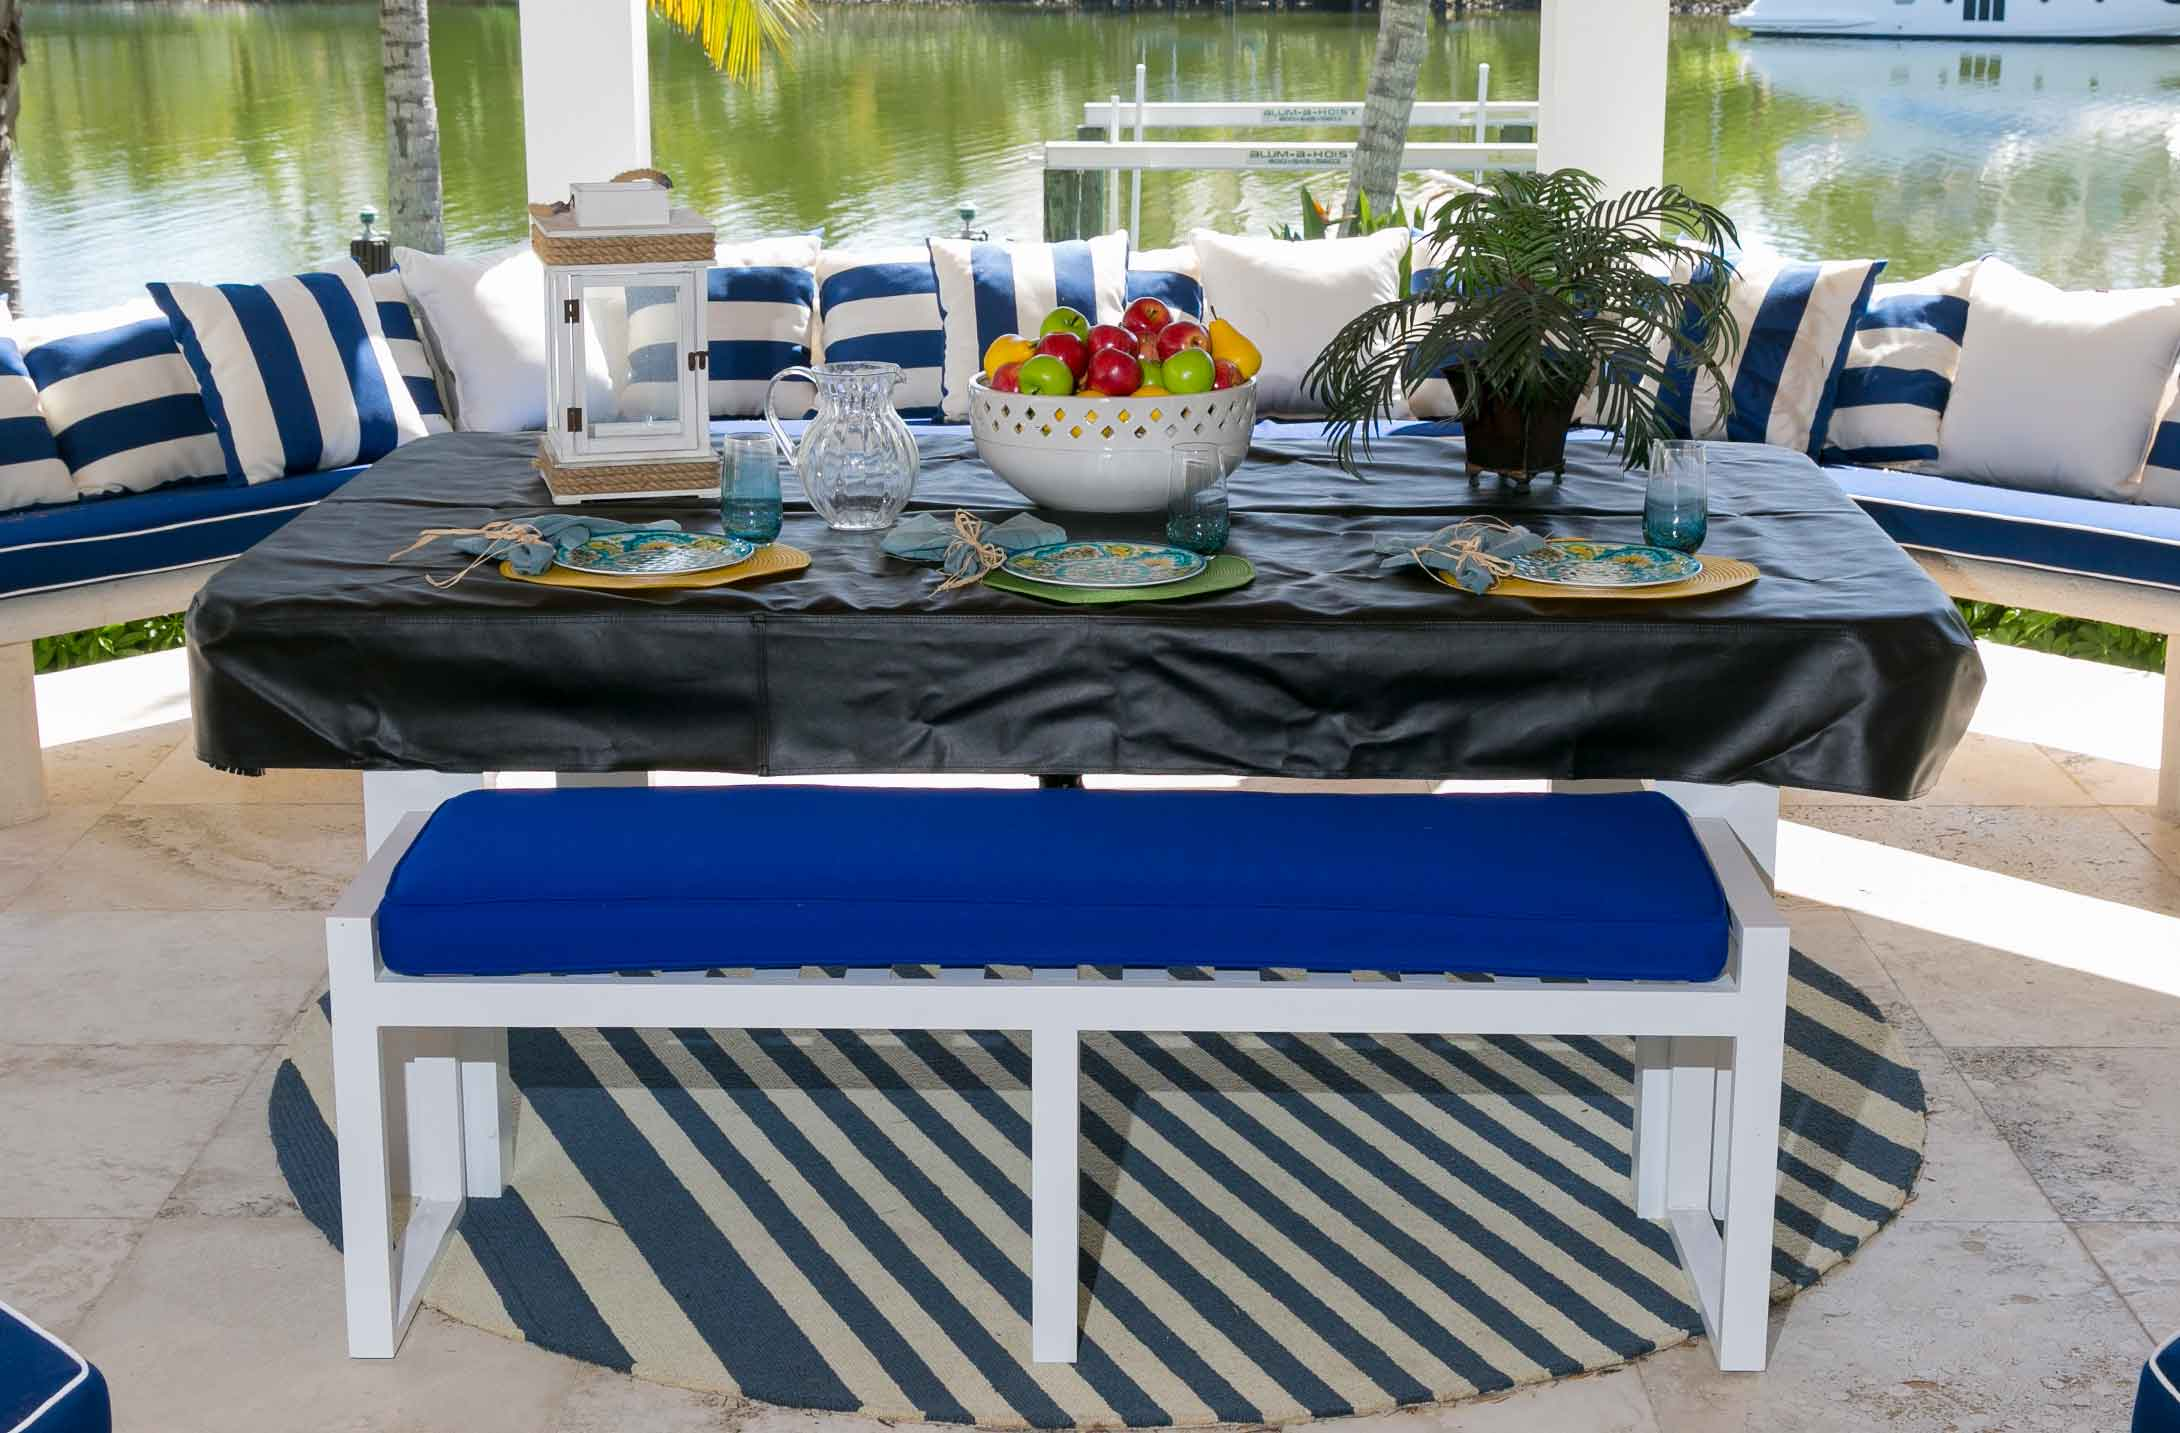 Outdoor pool table transforming into a entertaining area will black custom pool table cover and all weather seating bench